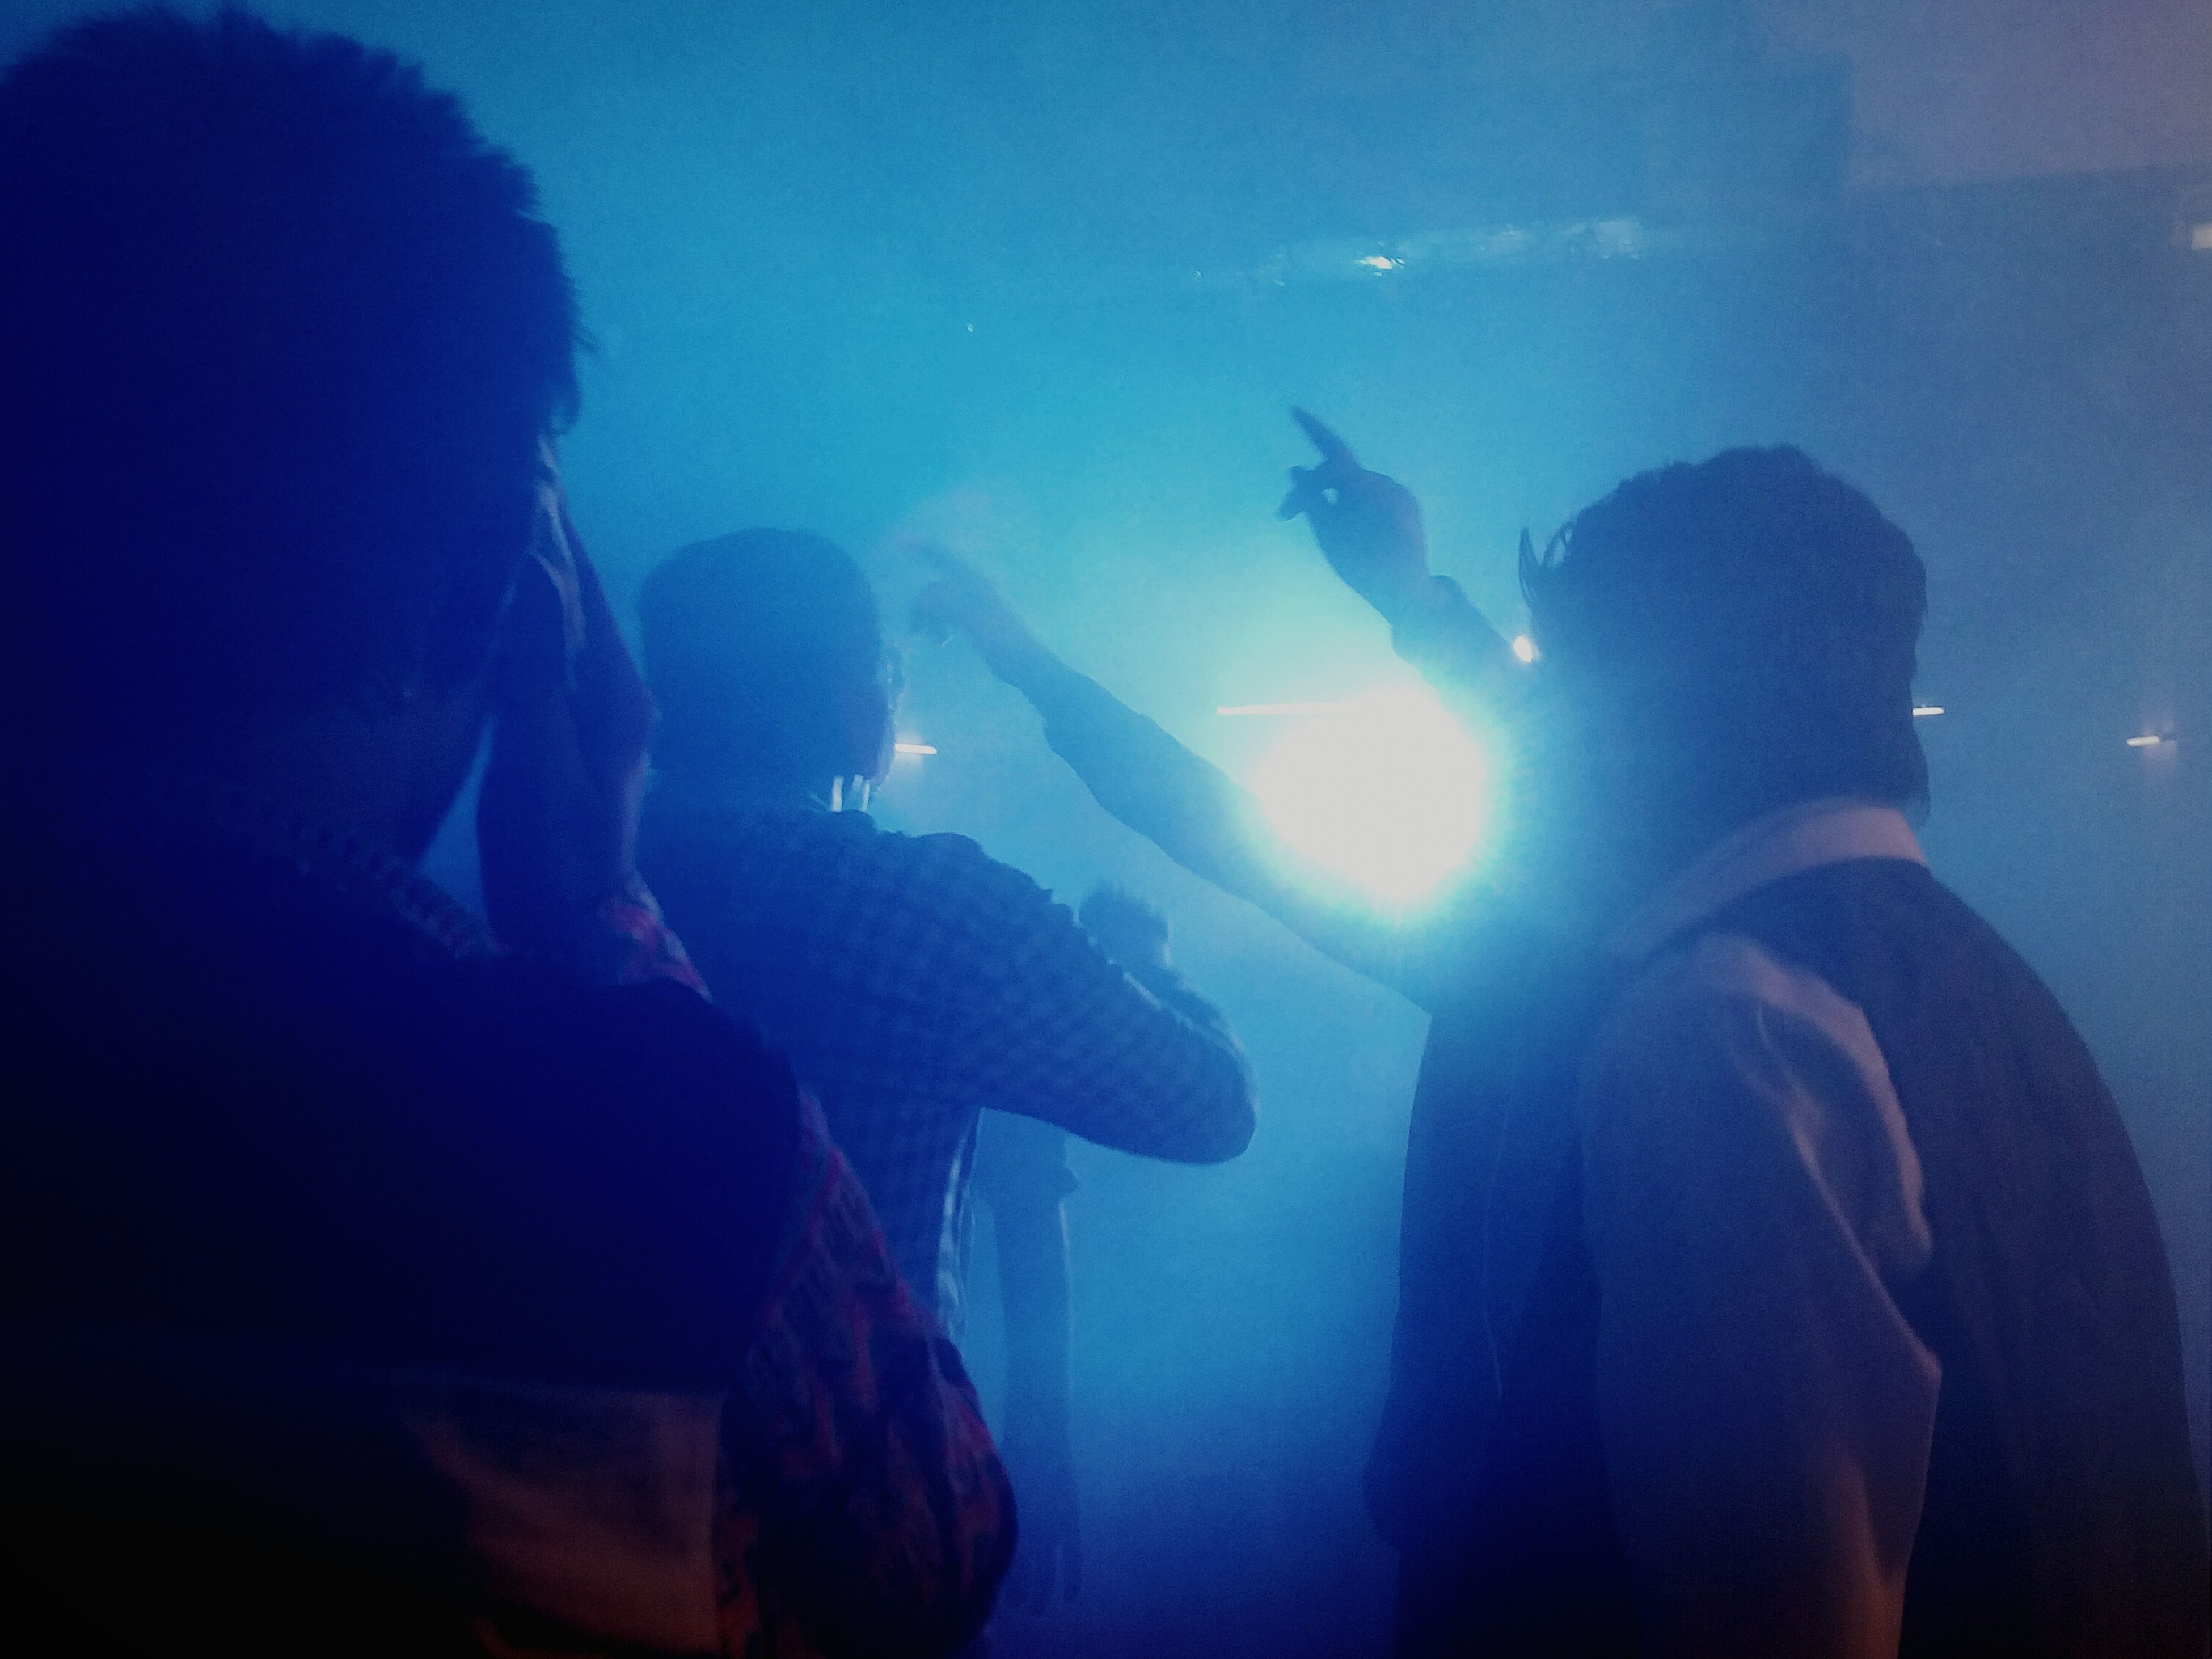 lifestyles, leisure activity, men, togetherness, silhouette, indoors, enjoyment, blue, person, underwater, music, fun, arts culture and entertainment, concert, rear view, nightlife, youth culture